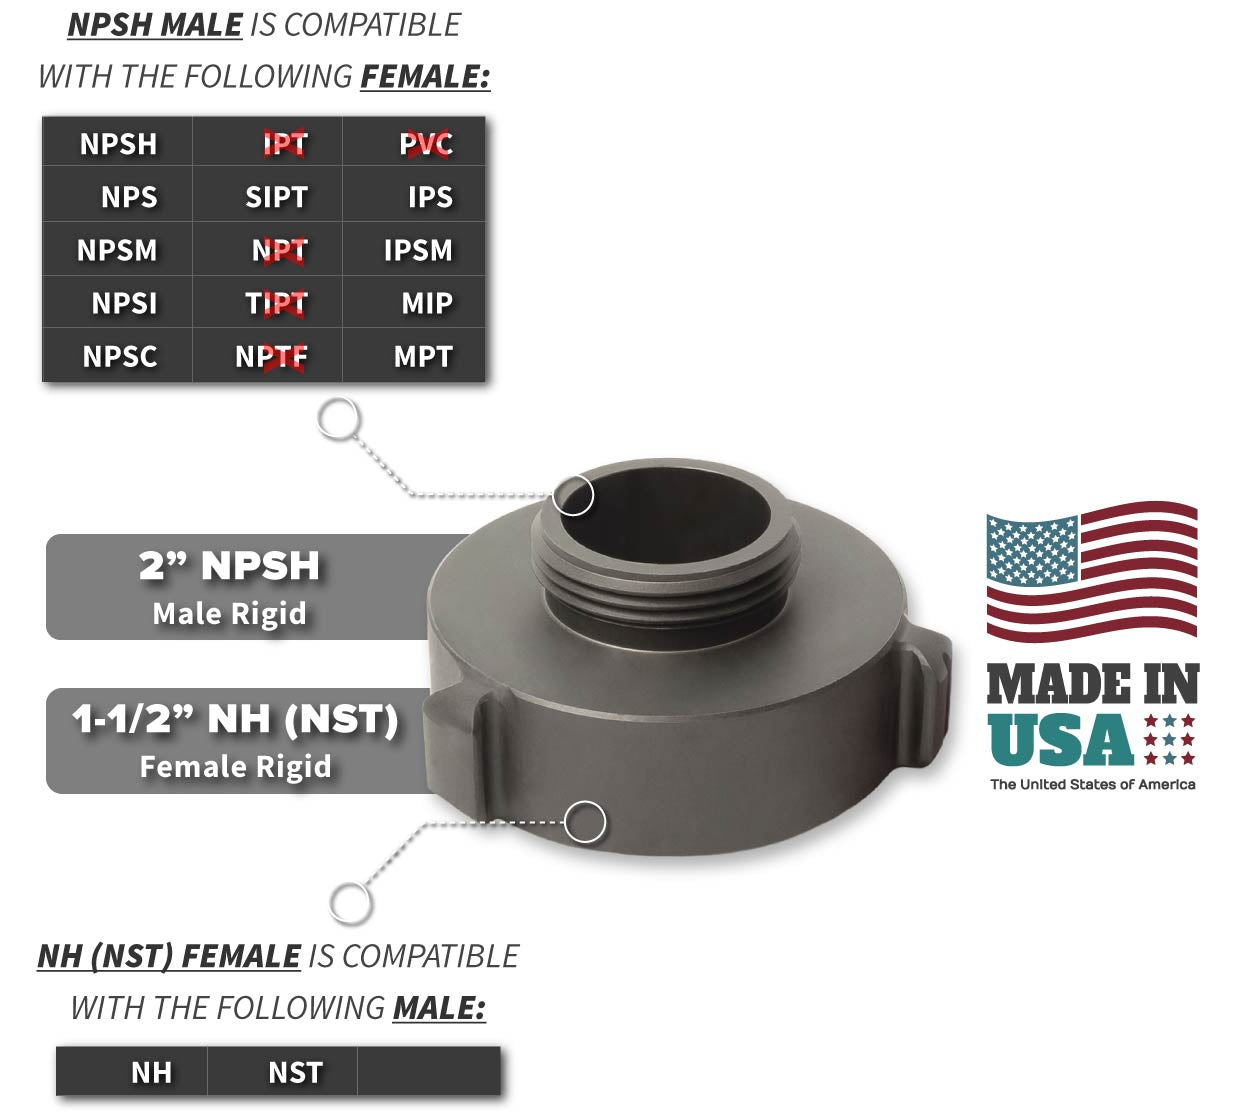 1.5 Inch NH-NST Female x 2 Inch NPSH Male Compatibility Thread Chart